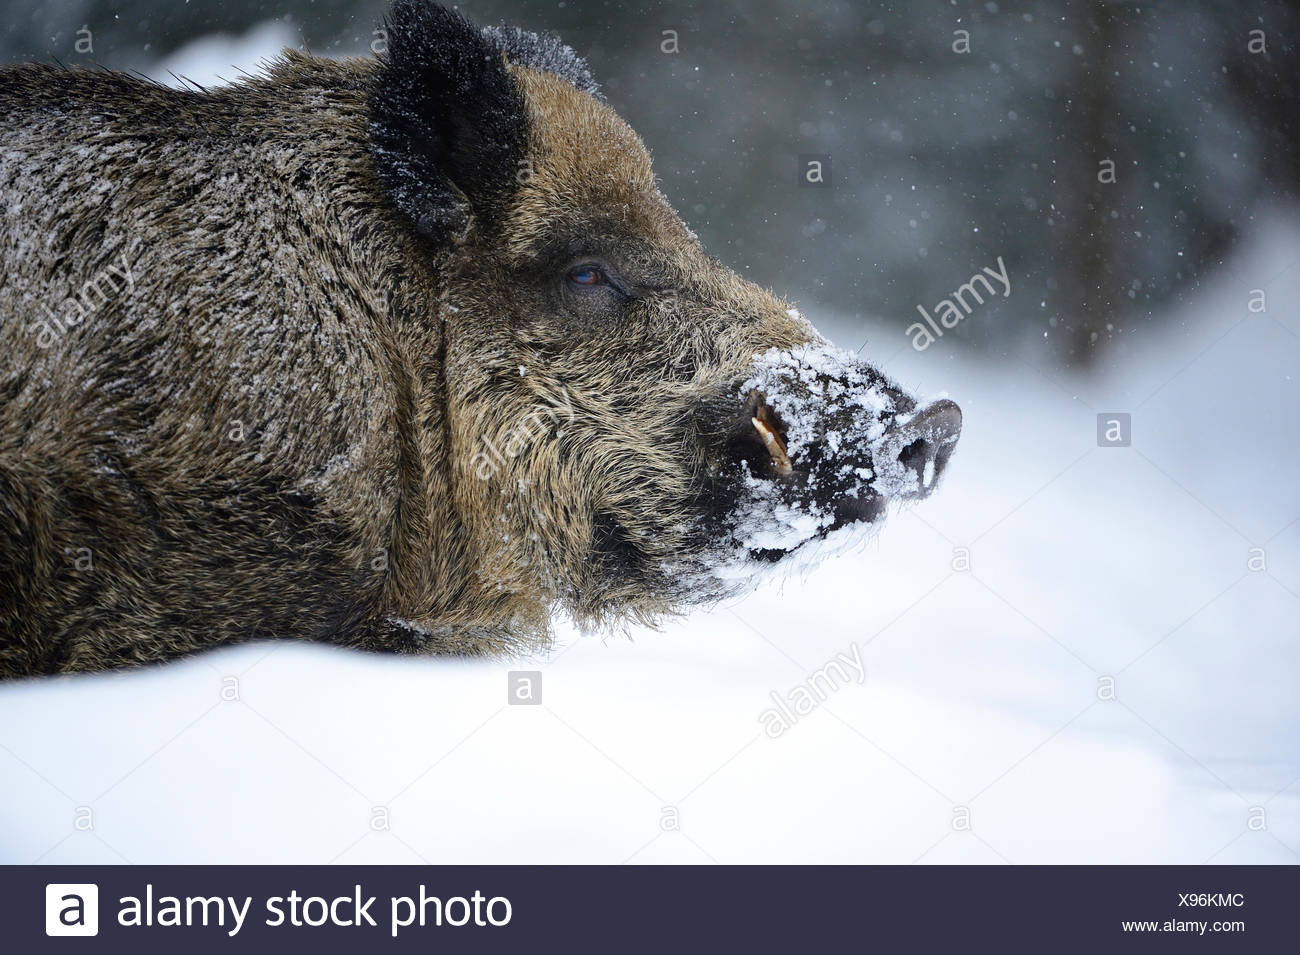 Wild boar, animal, Sus scrofa scrofa, sow, wild boars, black game, cloven-hoofed animal, pigs, pig, vertebrates, mammals, real p - Stock Image